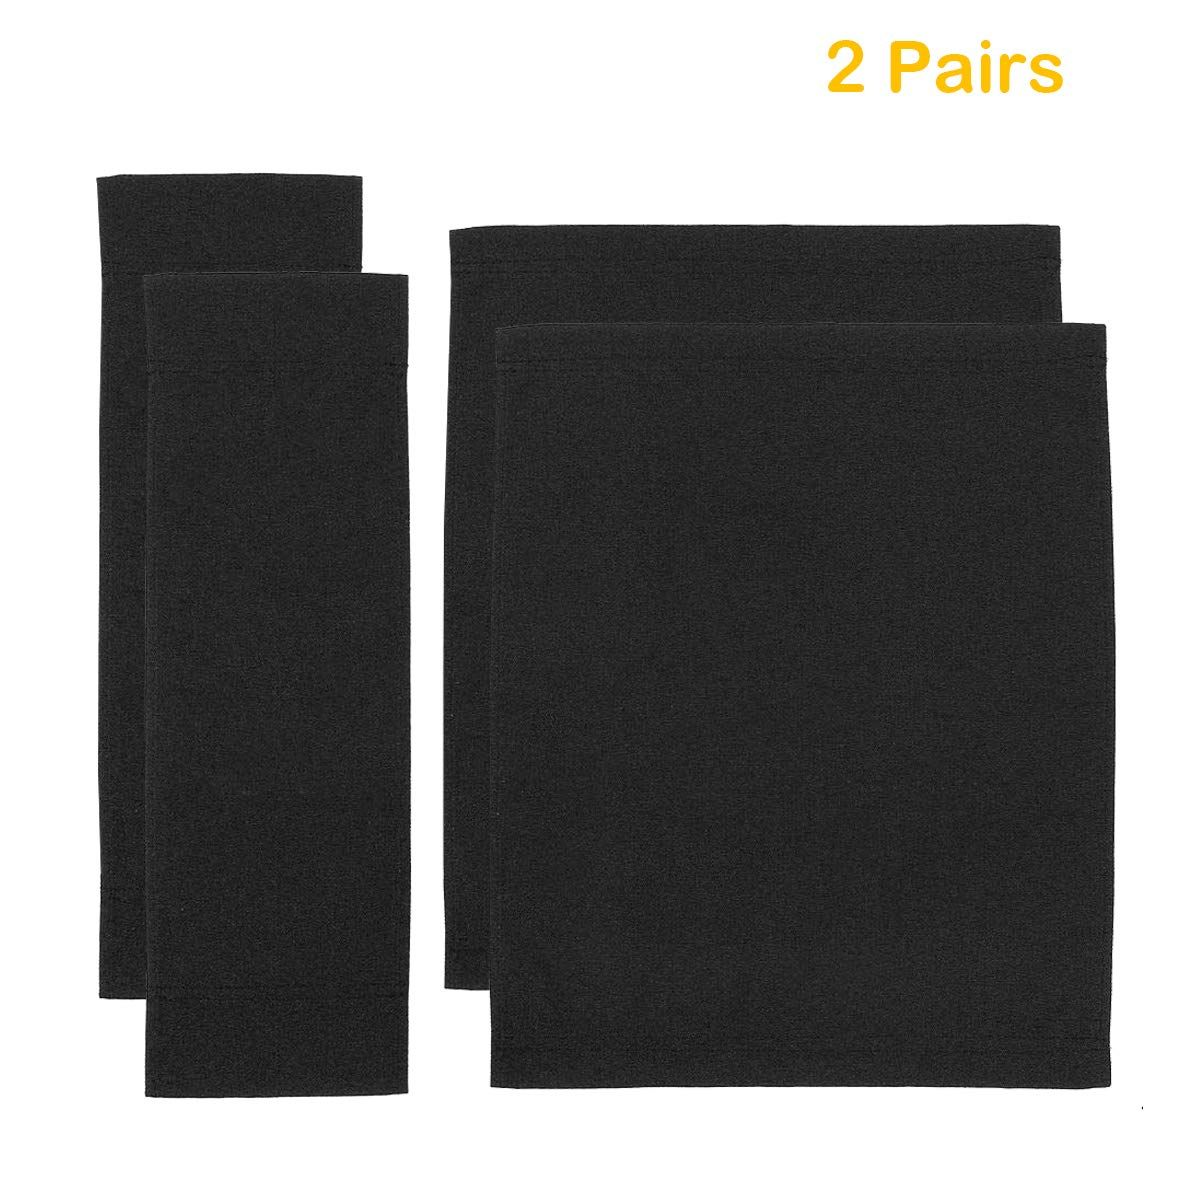 Counting Mars 2 Set Replacement Cover Canvas For Directors Chair Black Directors Chair Slipcovers For Chairs Patio Chair Covers